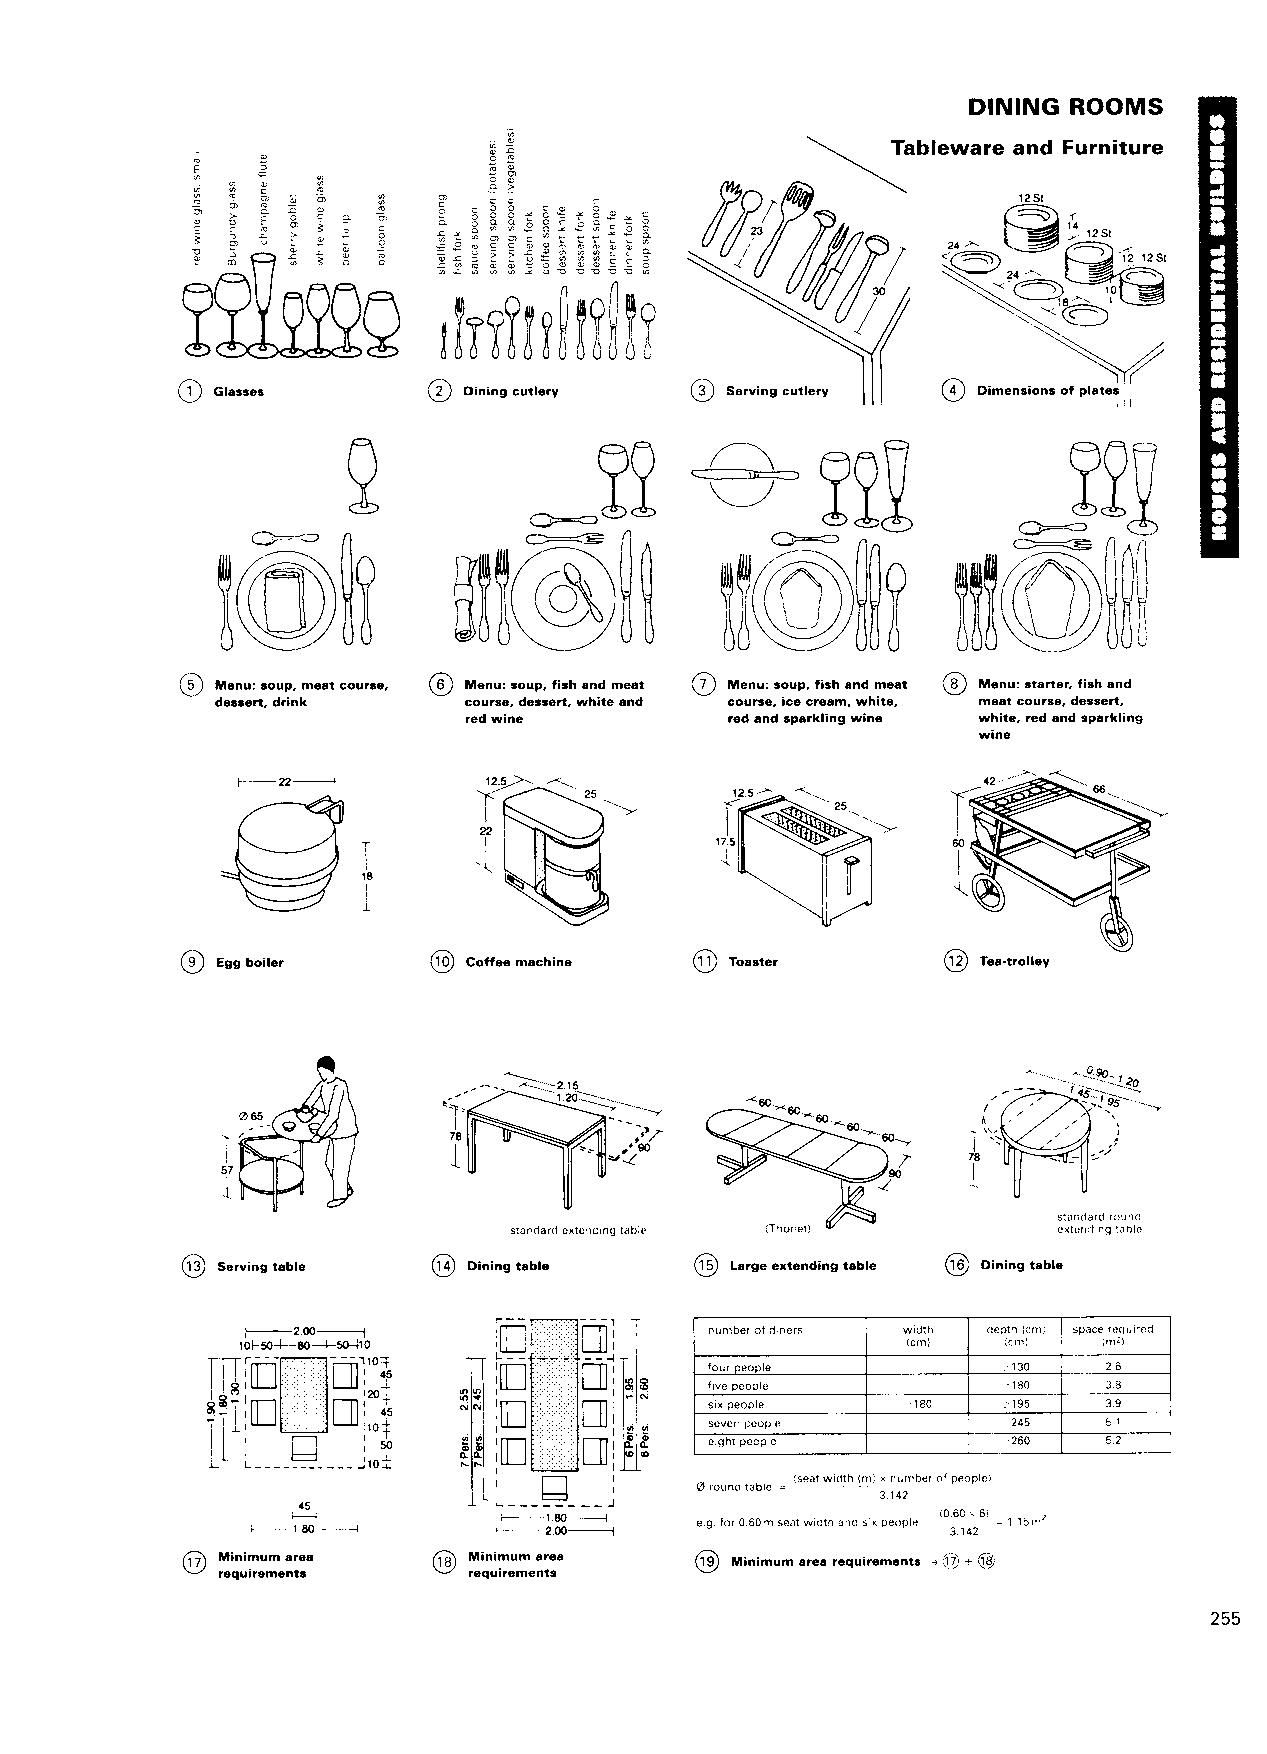 Classroom Design Manual ~ Neufert architects data ed kitchens pinterest